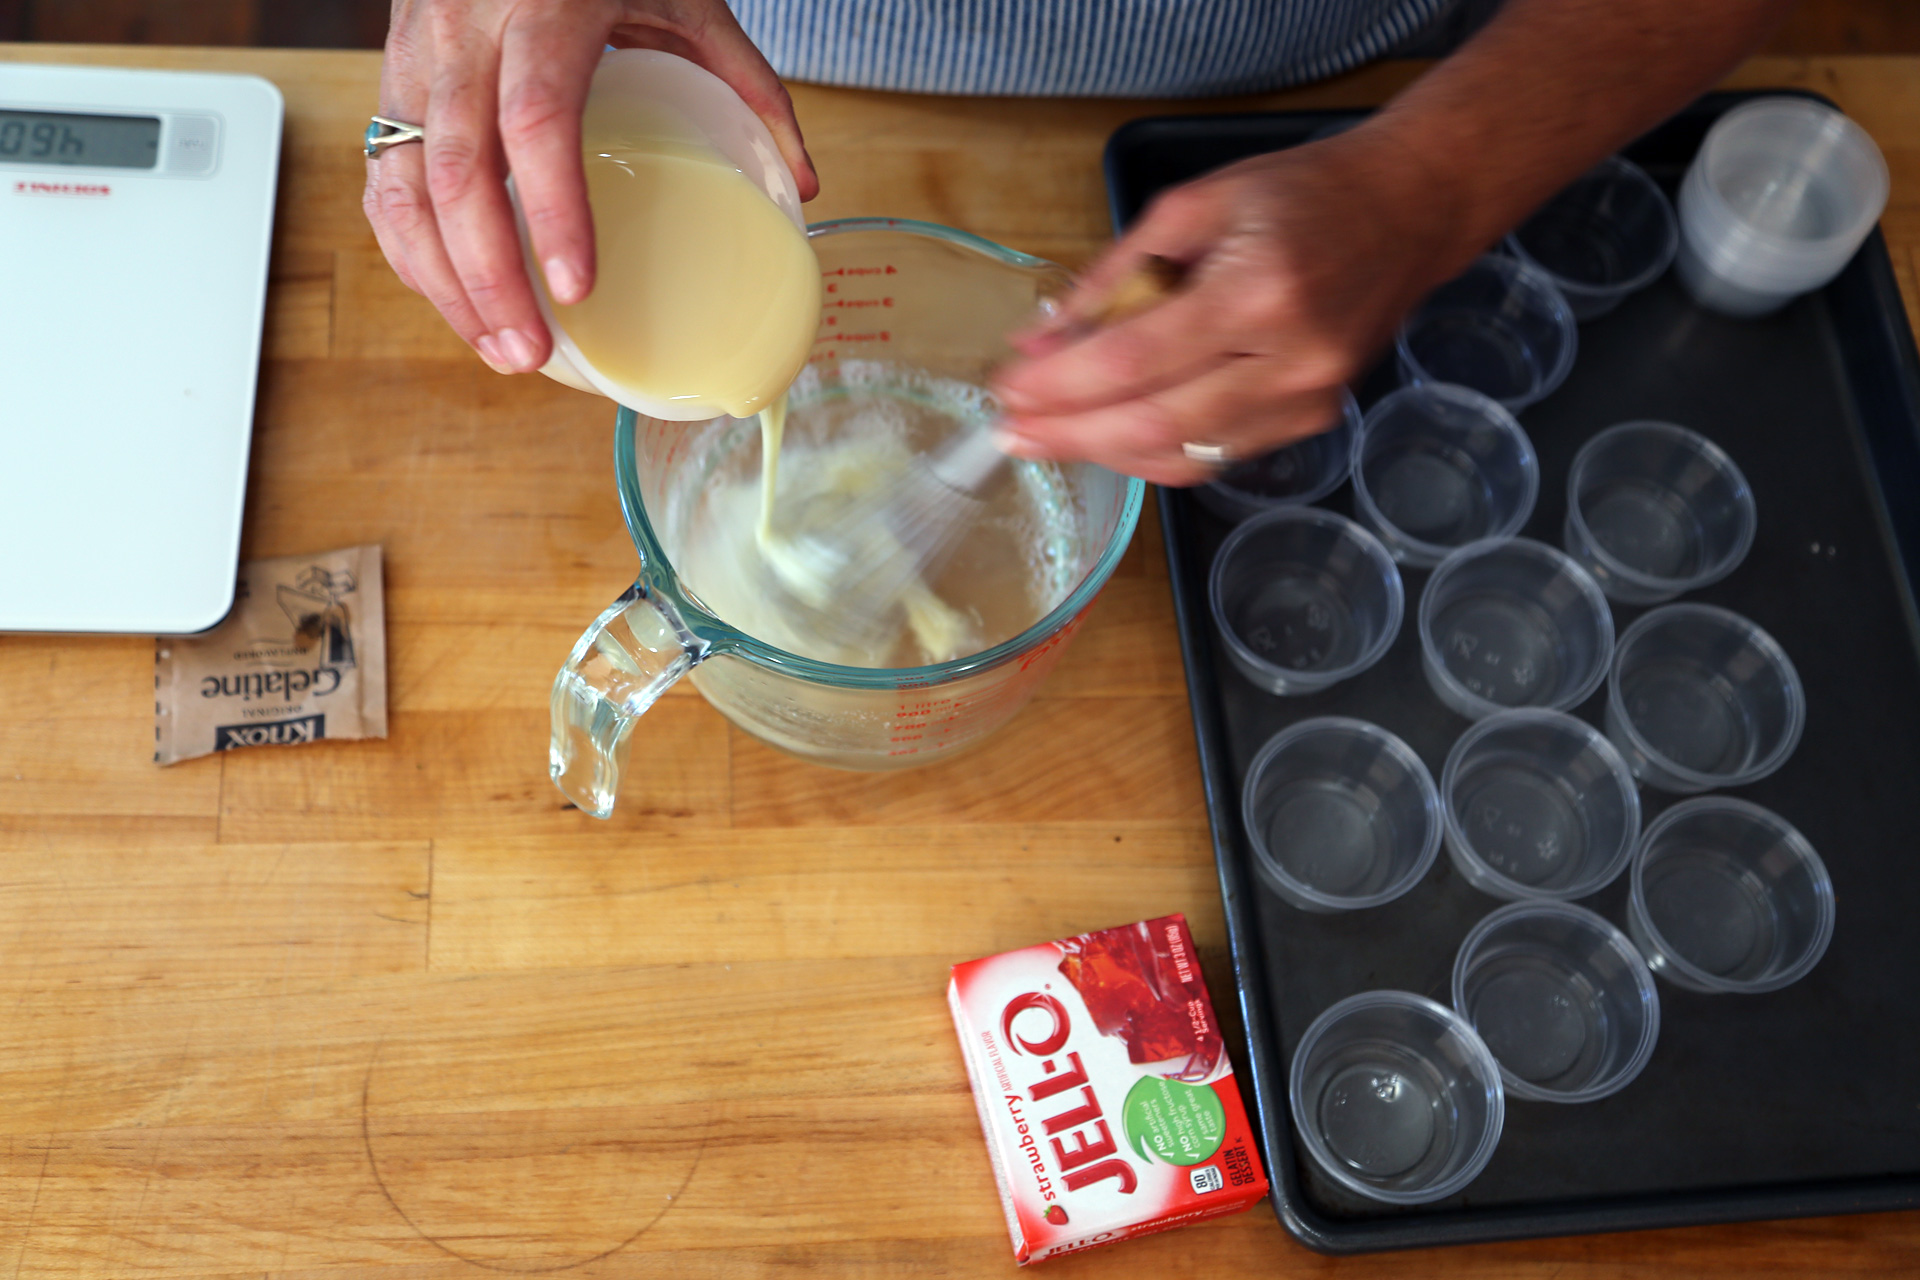 Add the boiling water, stir to combine, then stir in the condensed milk and lemon extract.